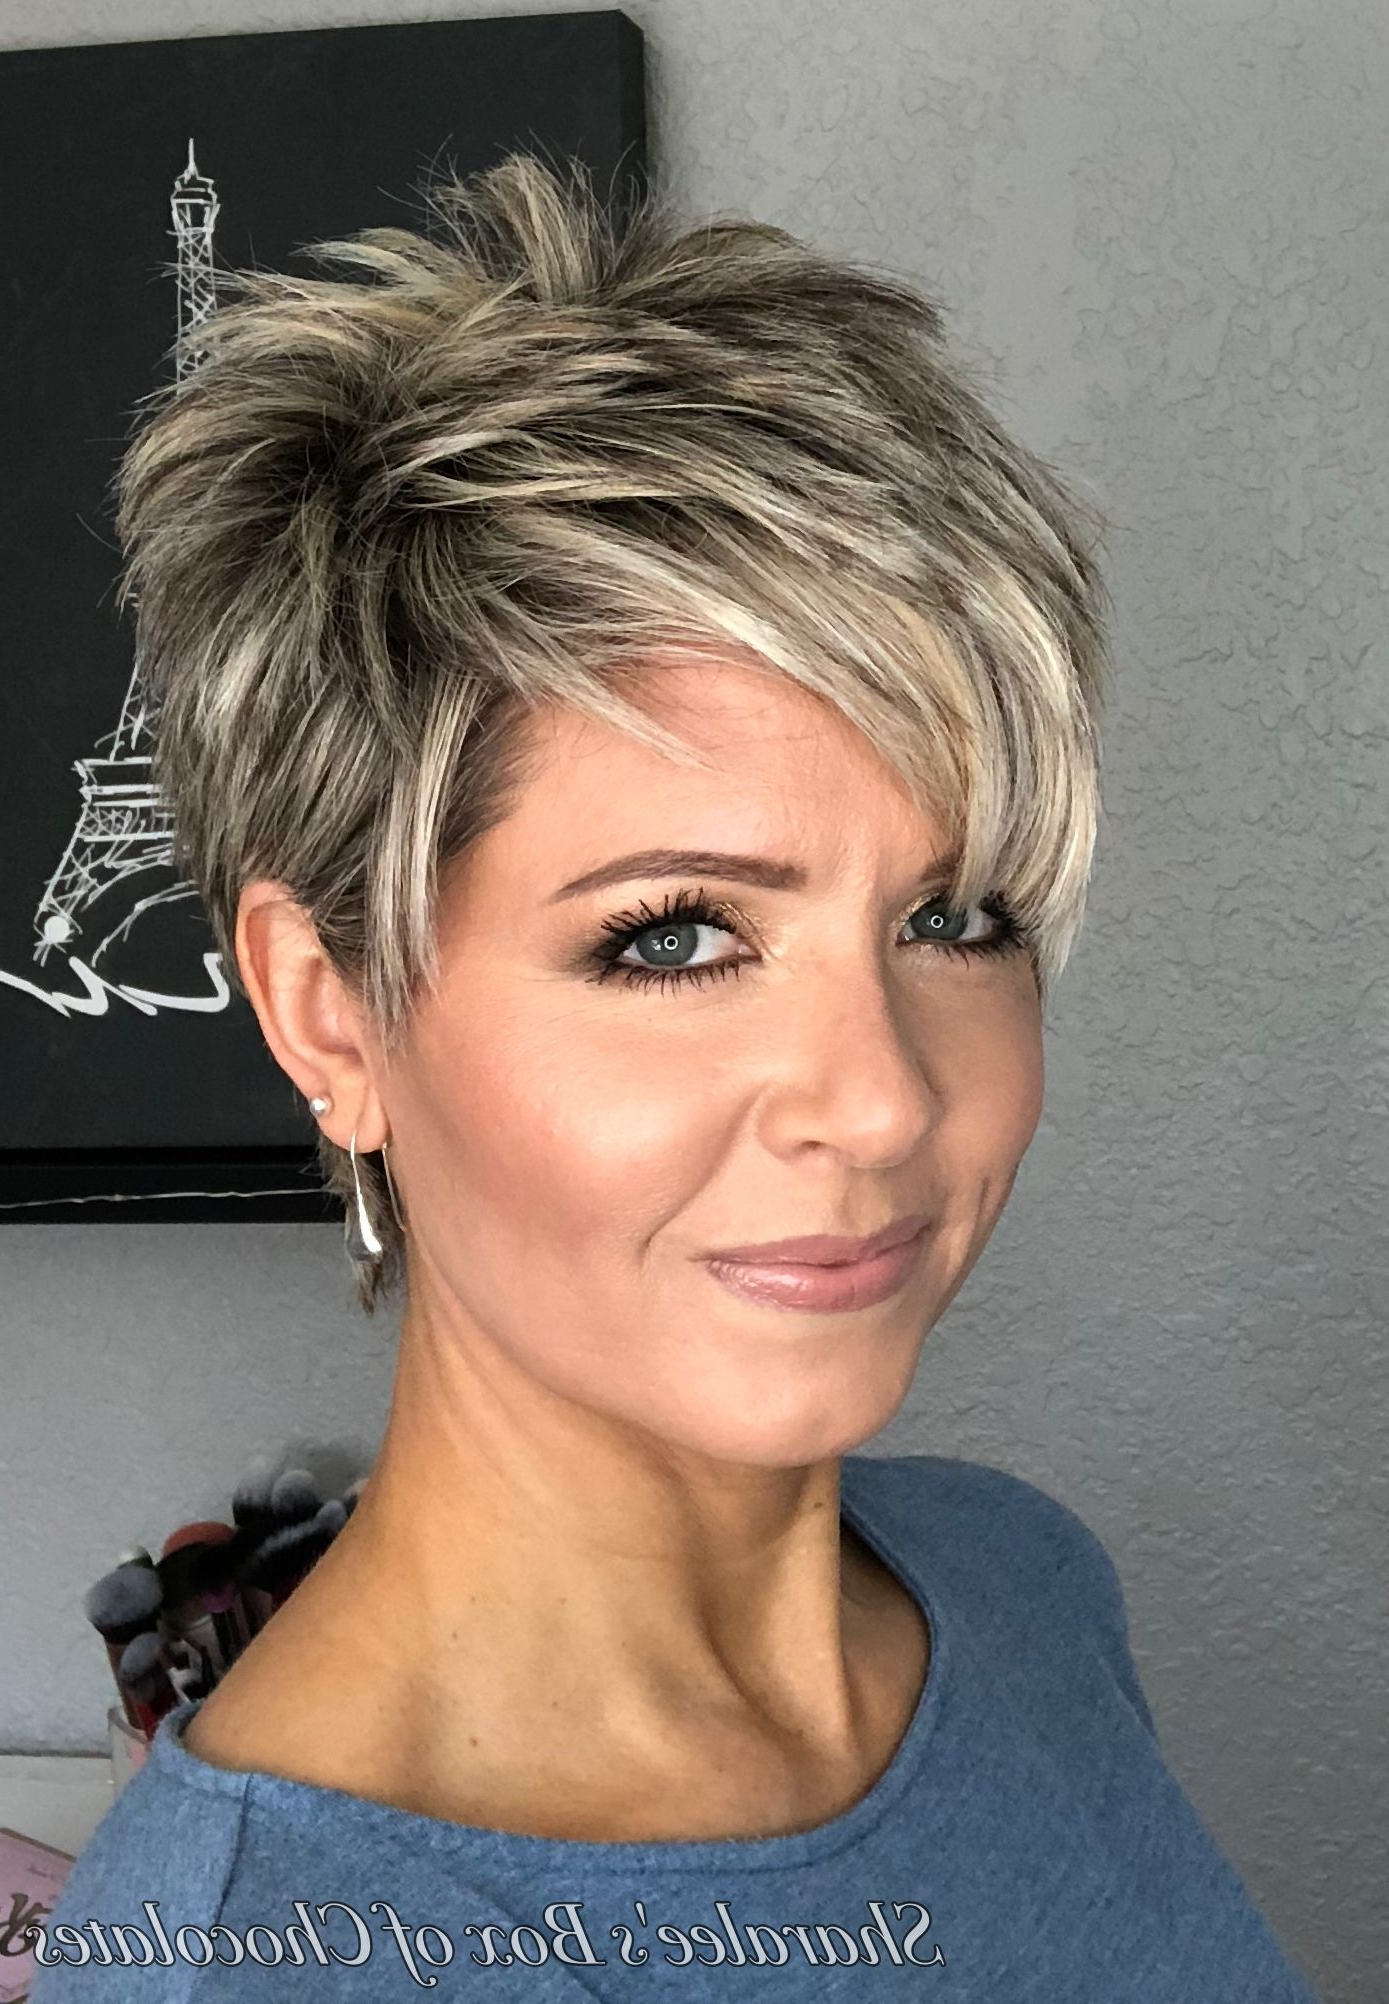 Fashionable Edgy Look Pixie Haircuts With Sass With Regard To Pin On Hairstyles (Gallery 1 of 20)